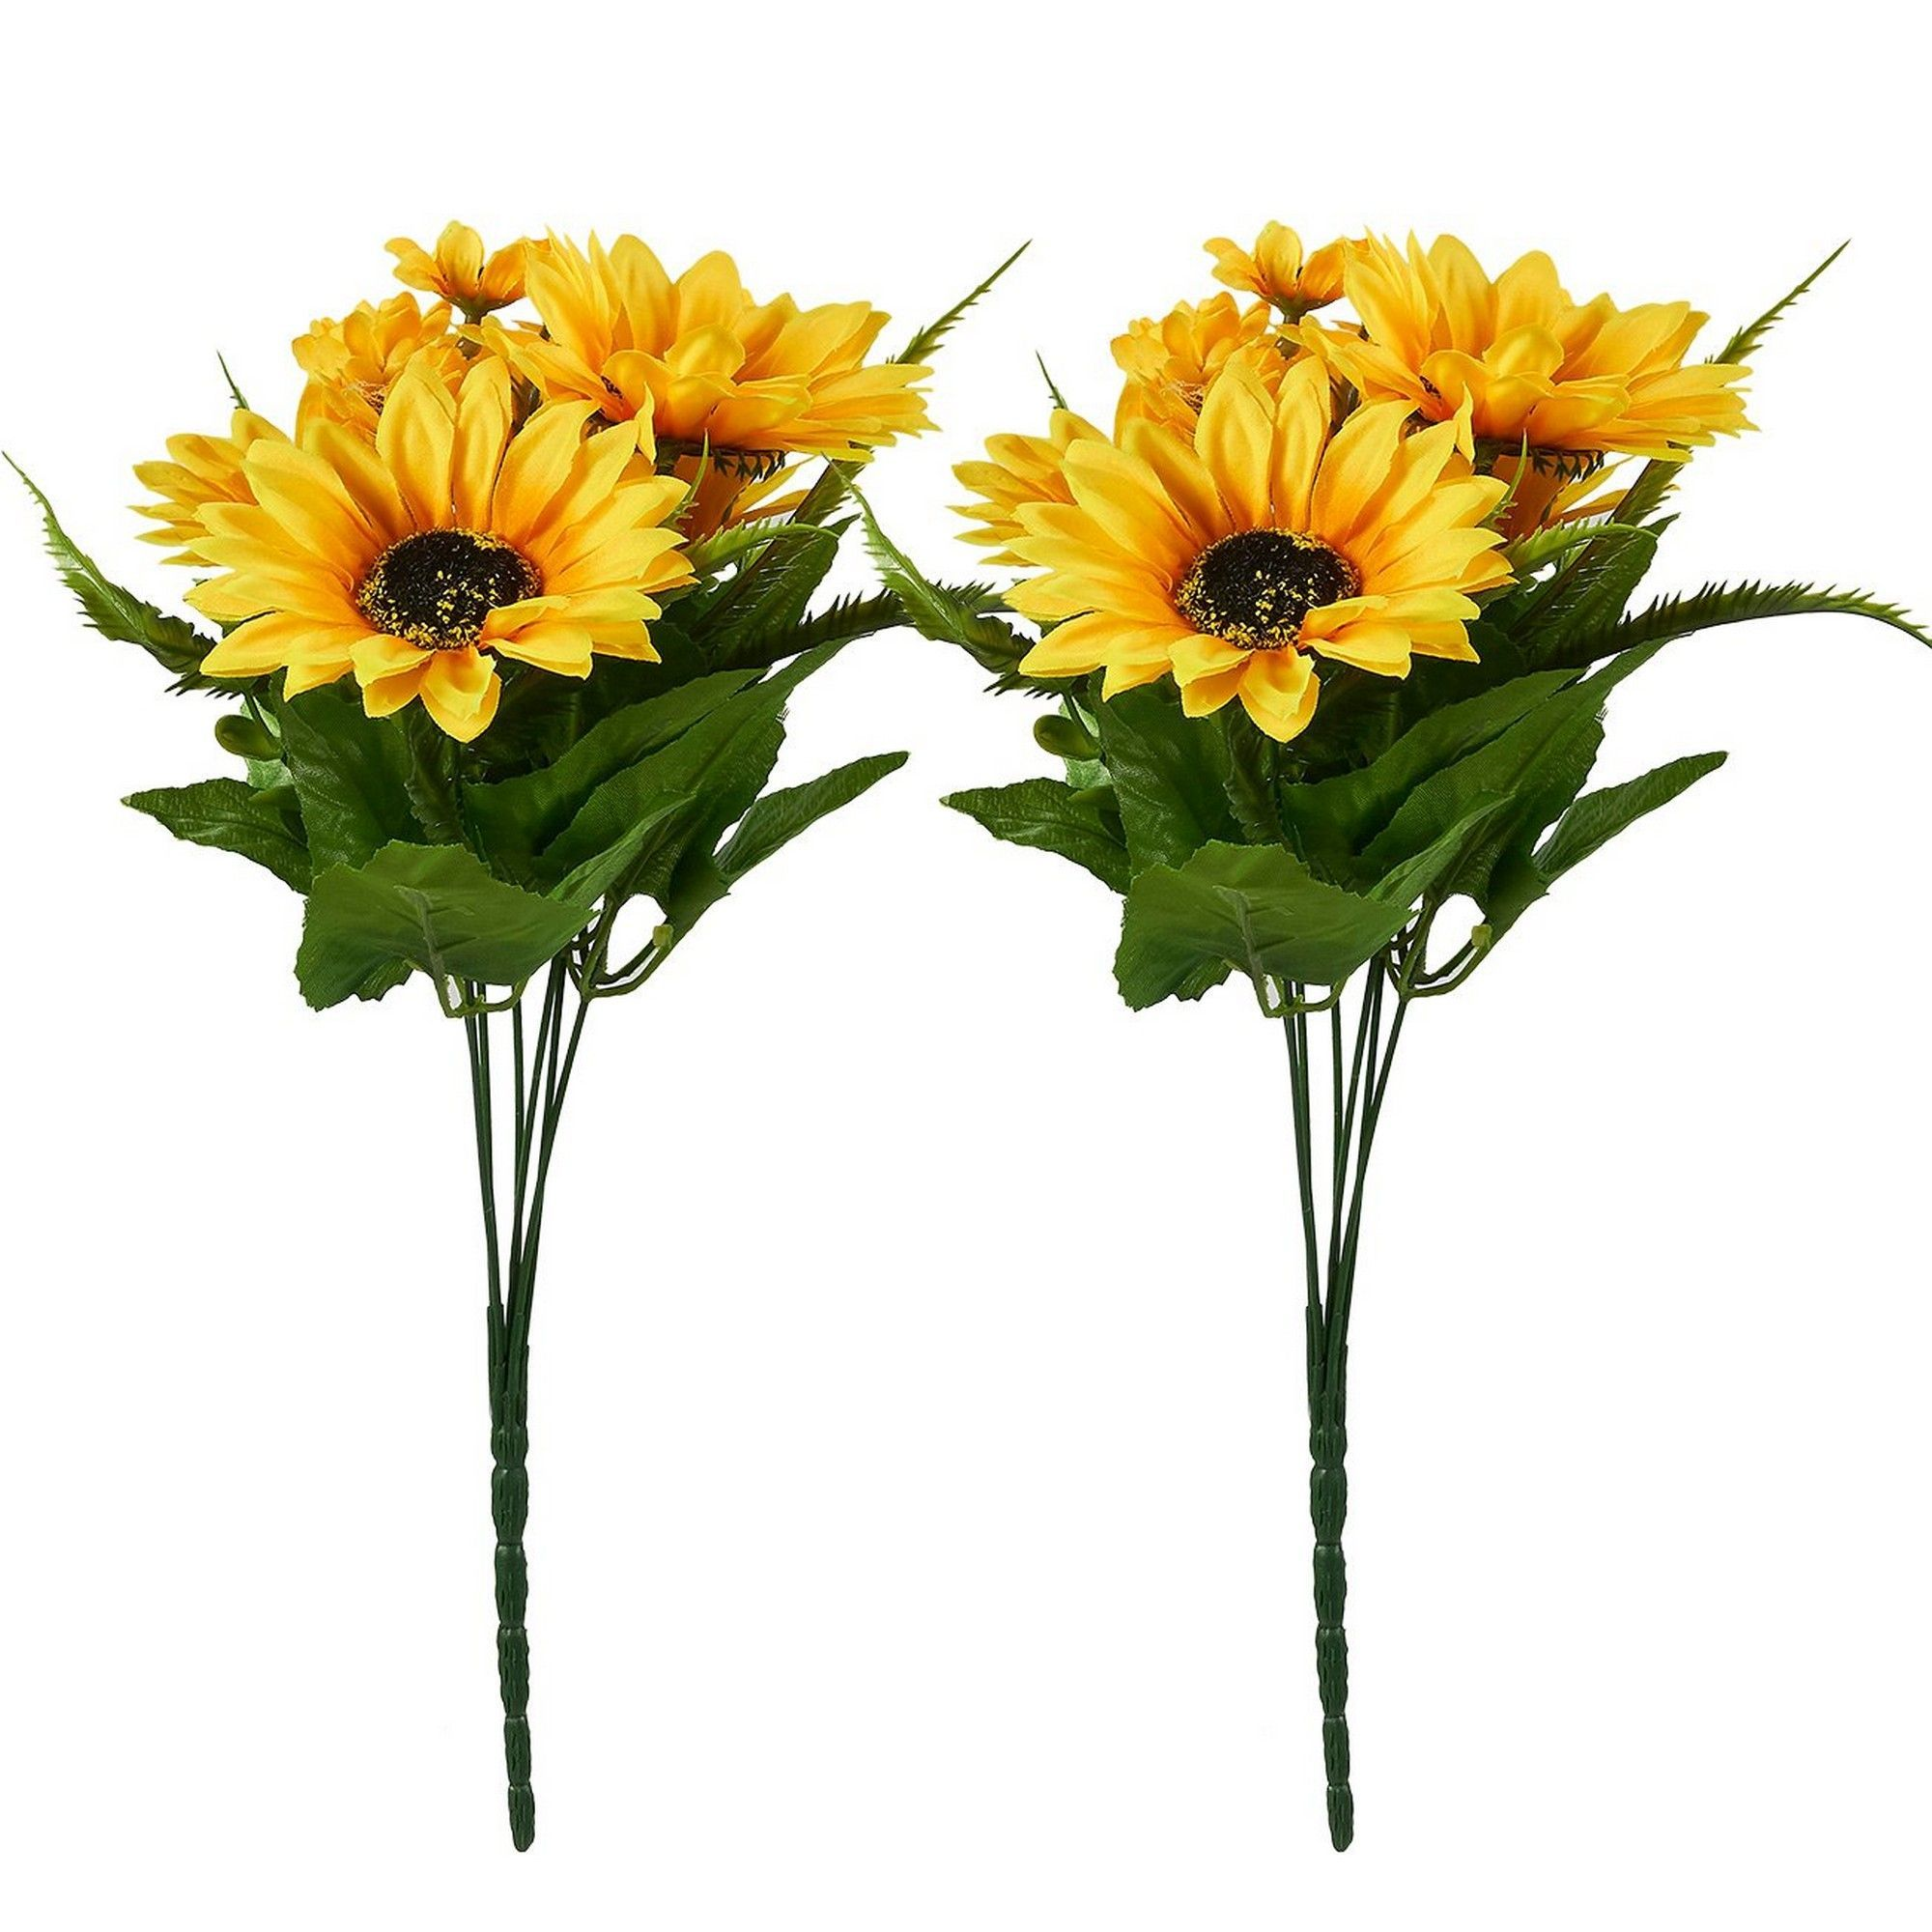 Artificial Sunflowers 2 Bunches Sunflower Bouquet In Yellow Fake Flowers Artificial Plant For Home Decor Wedding Party Patio Walmart Com Walmart Com